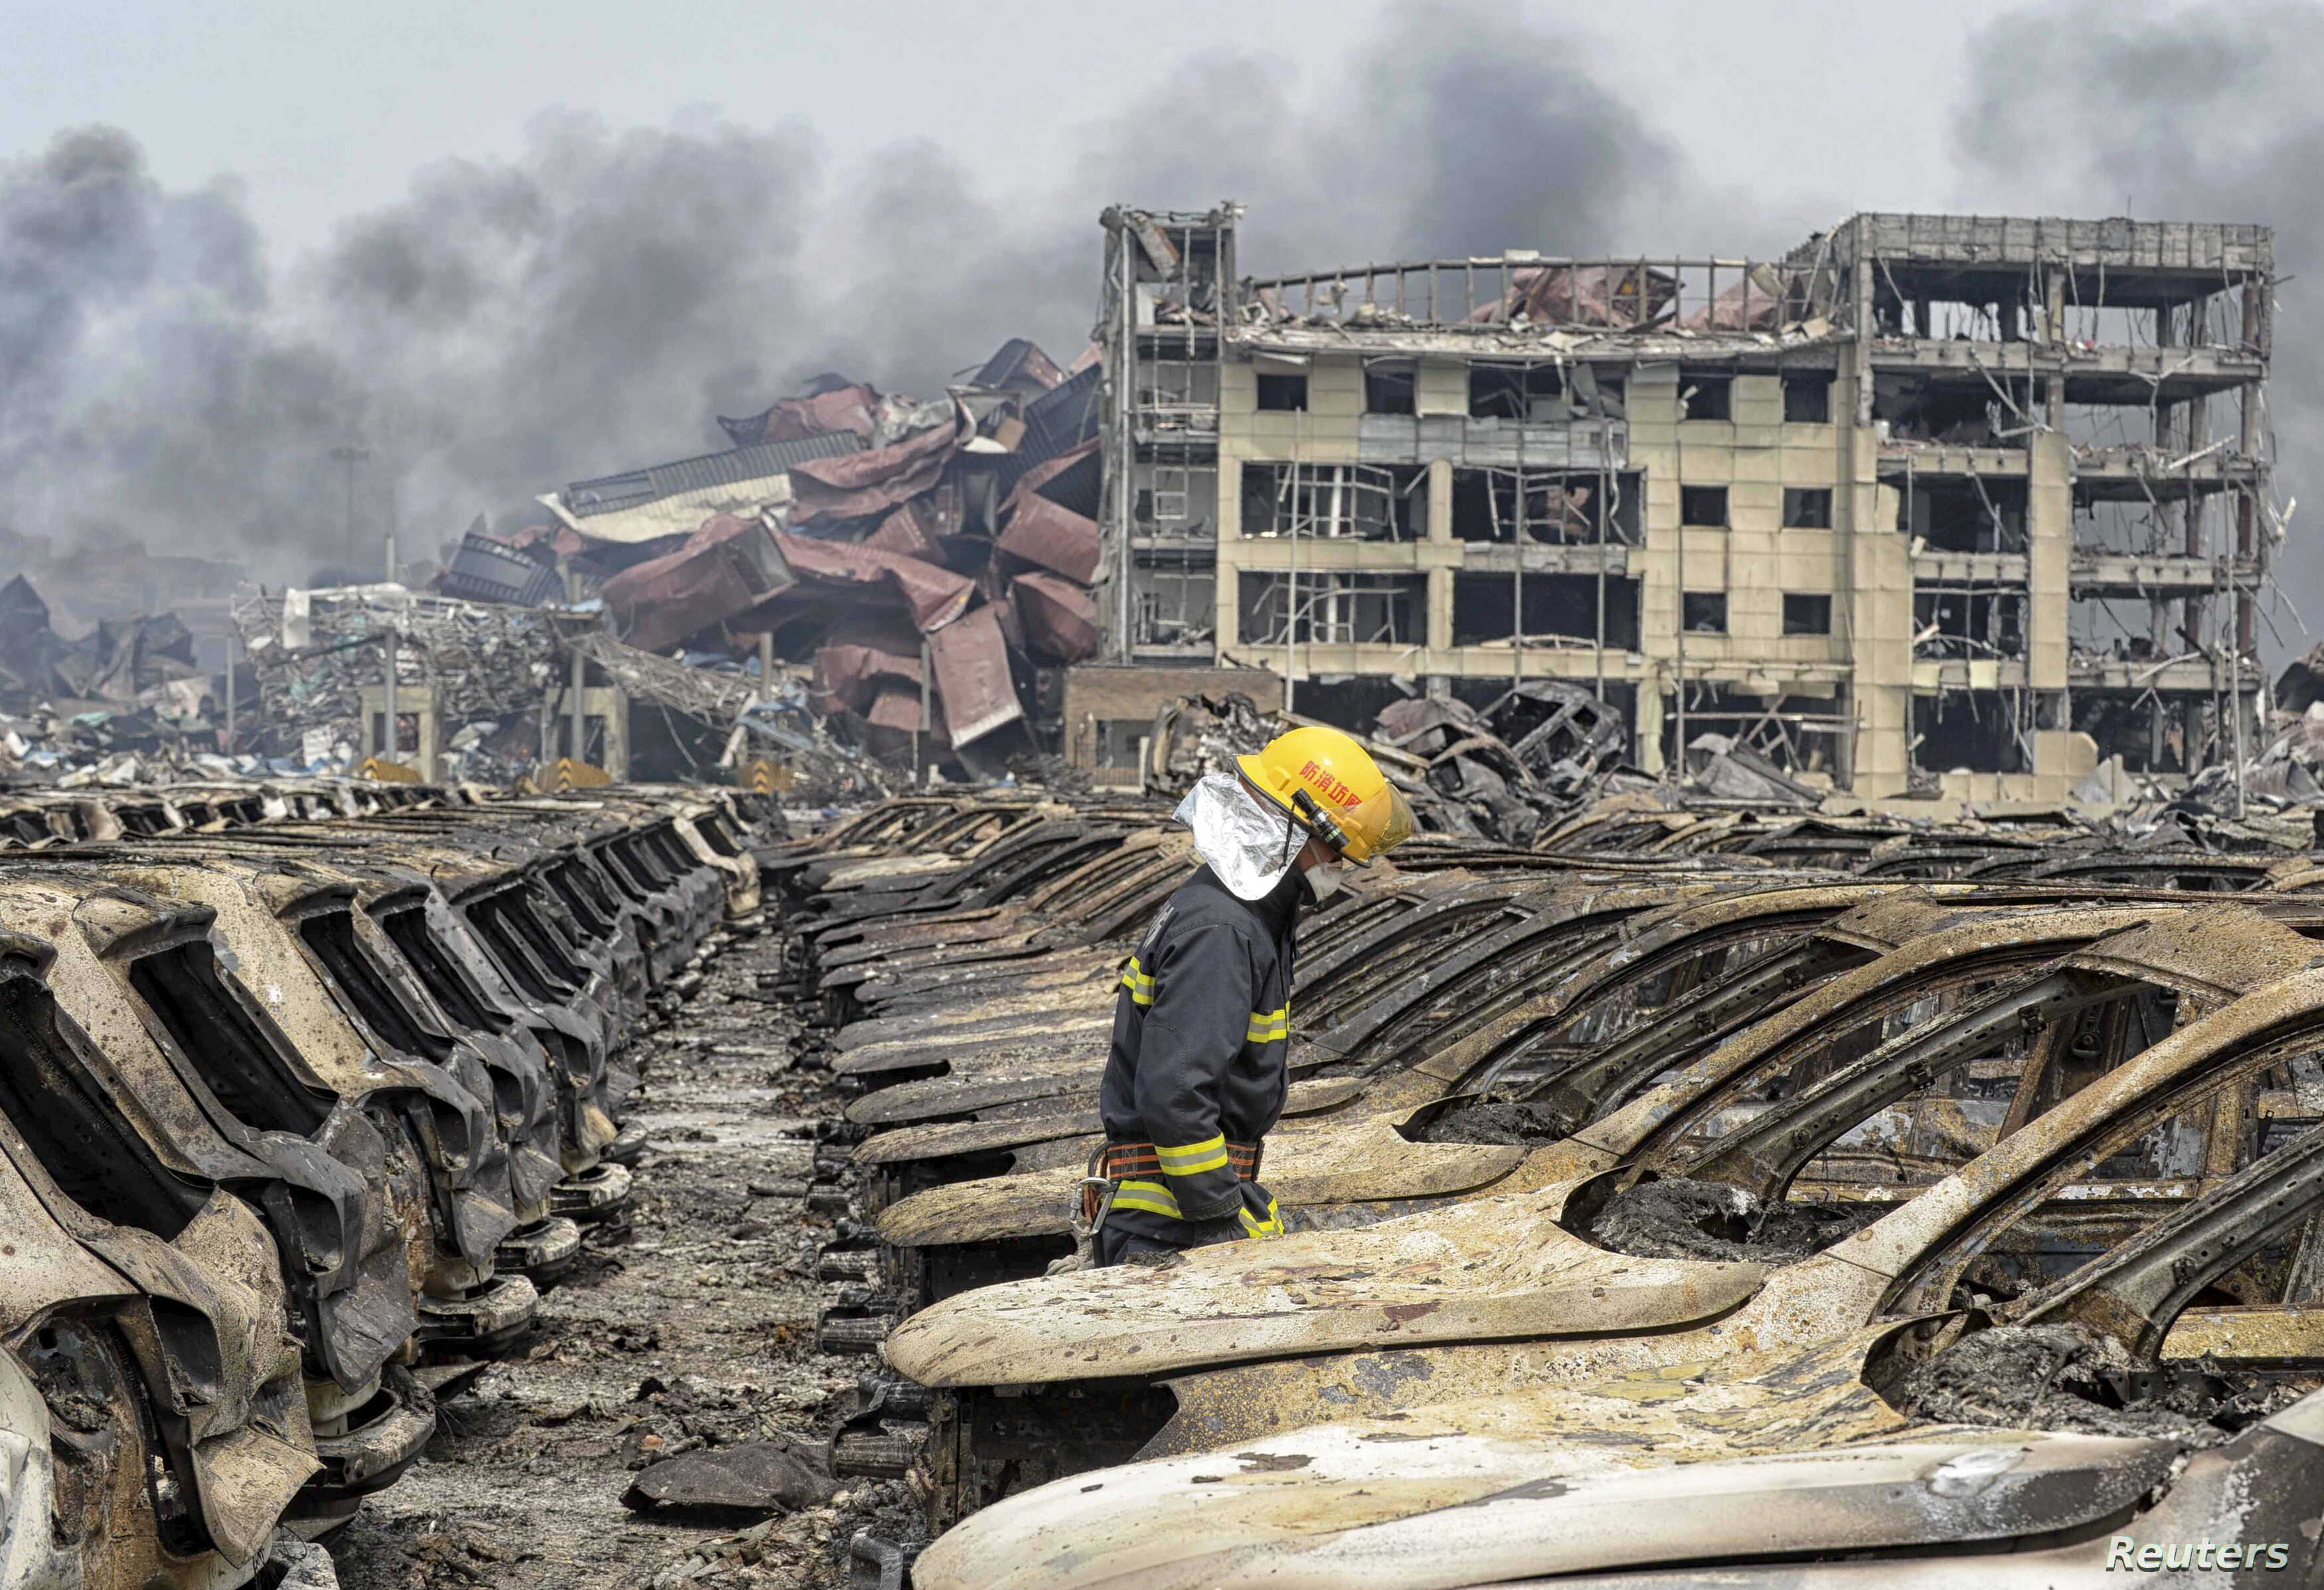 Tianjin Blast Puts Spotlight on Chemical Industry   Voice of America